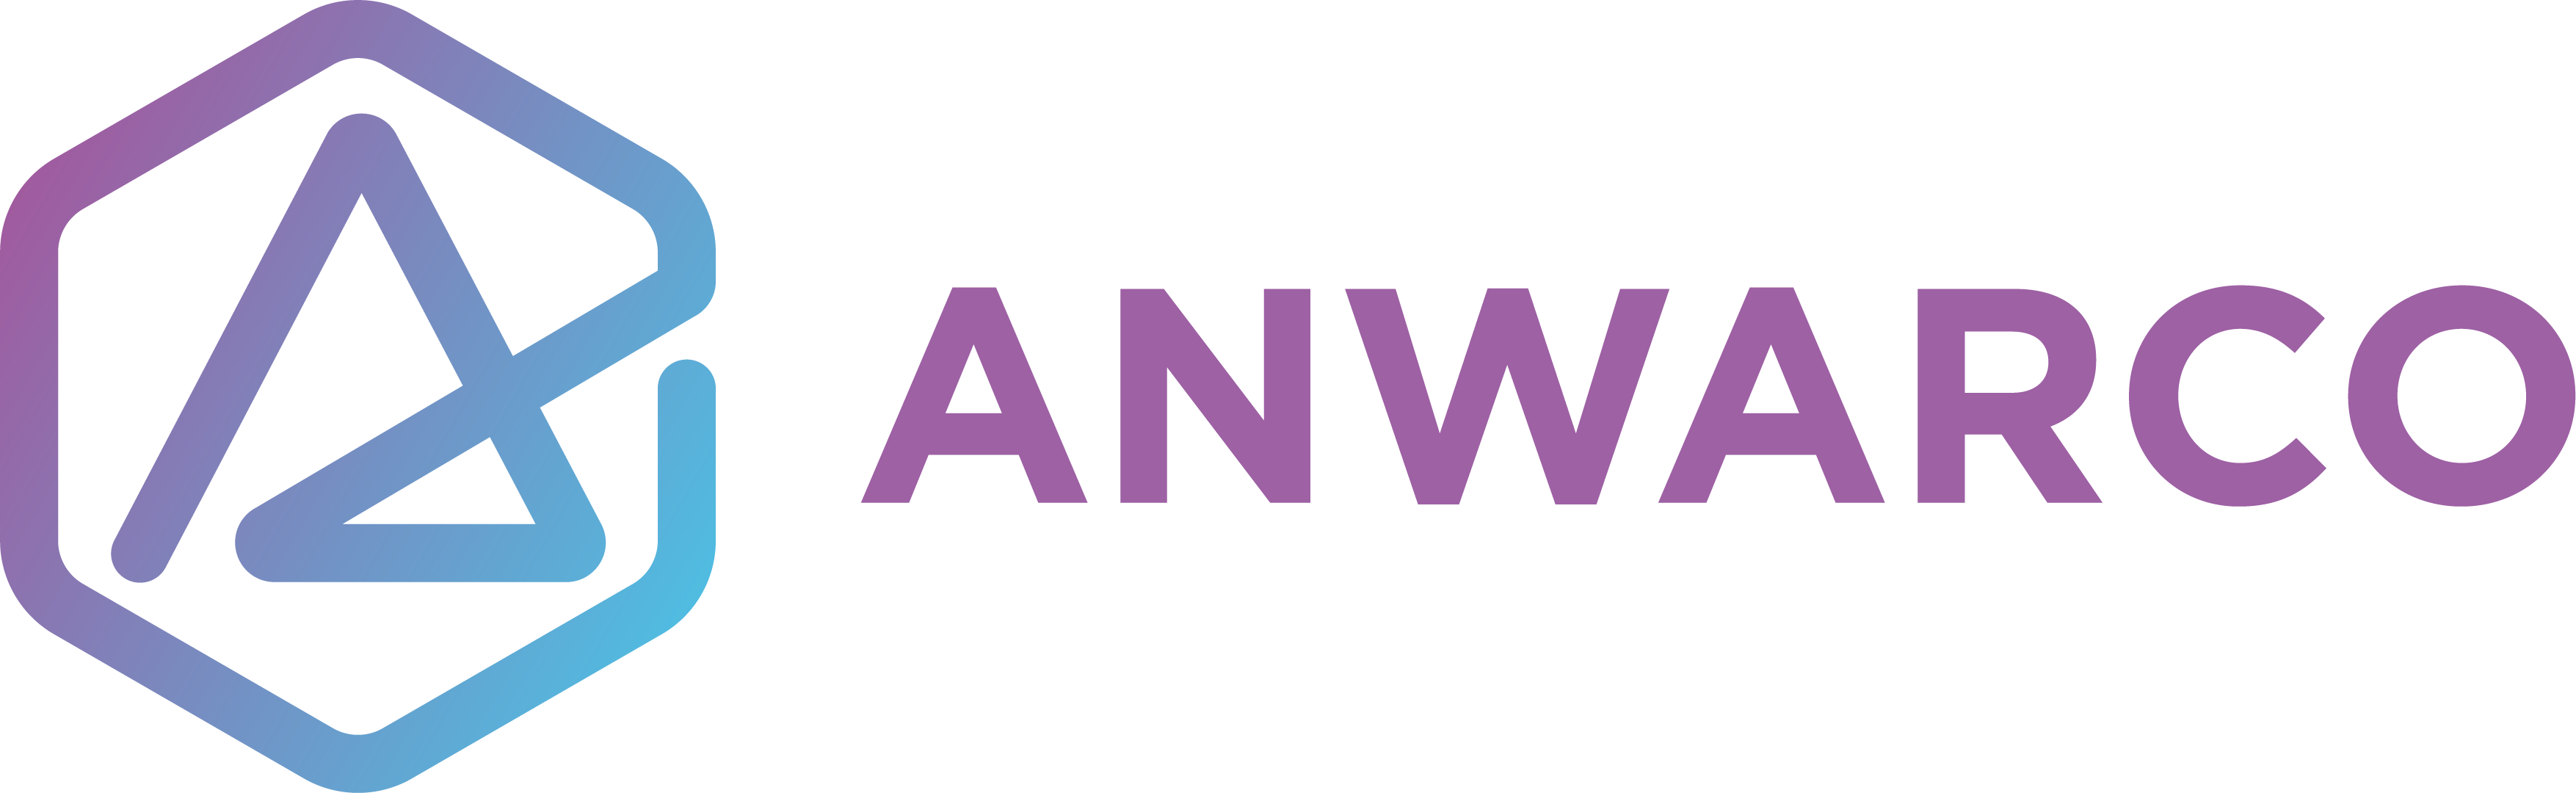 Anwarco Center